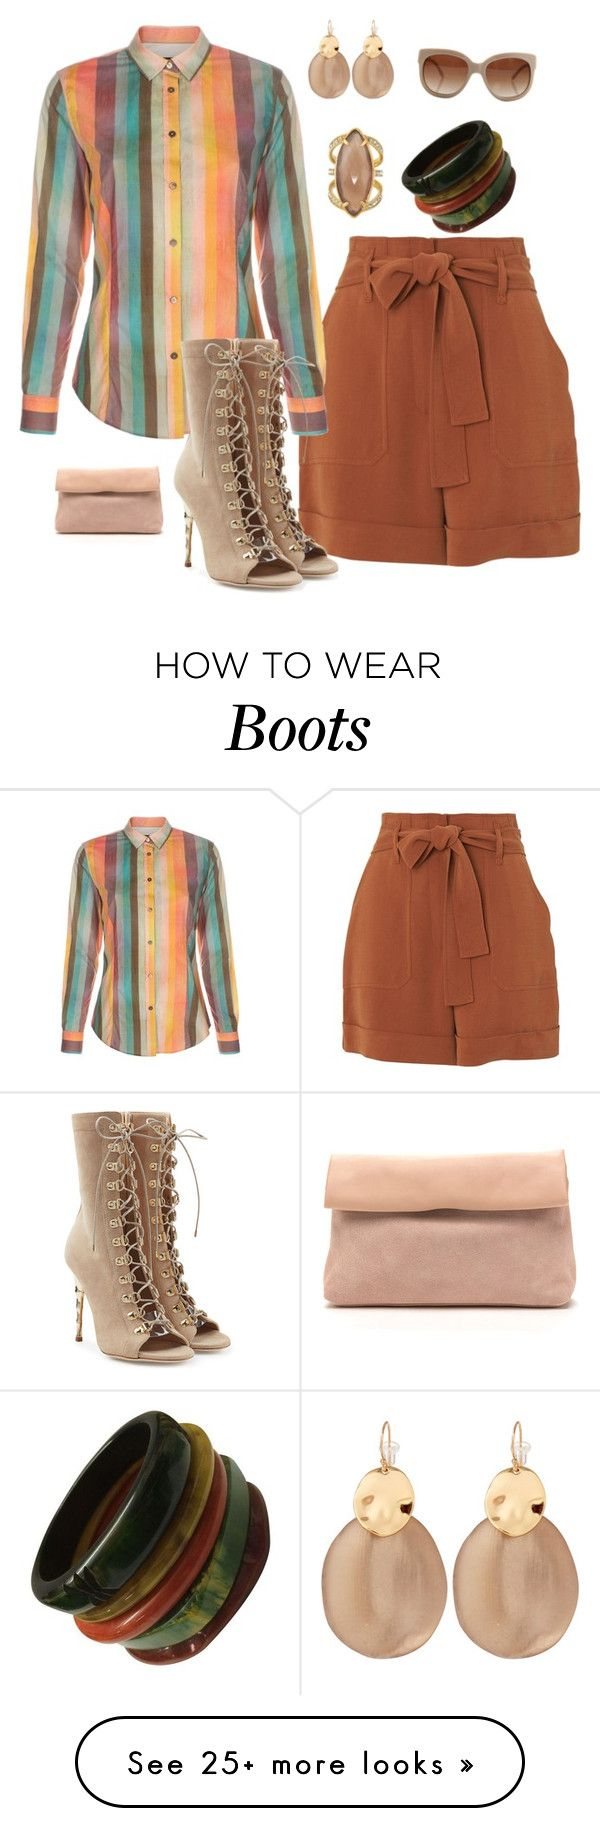 """""""Earth tones"""" by kerashawn on Polyvore featuring Whistles, Paul Smith, Balmain, Henri Bendel, Alexis Bittar and STELLA McCARTNEY"""